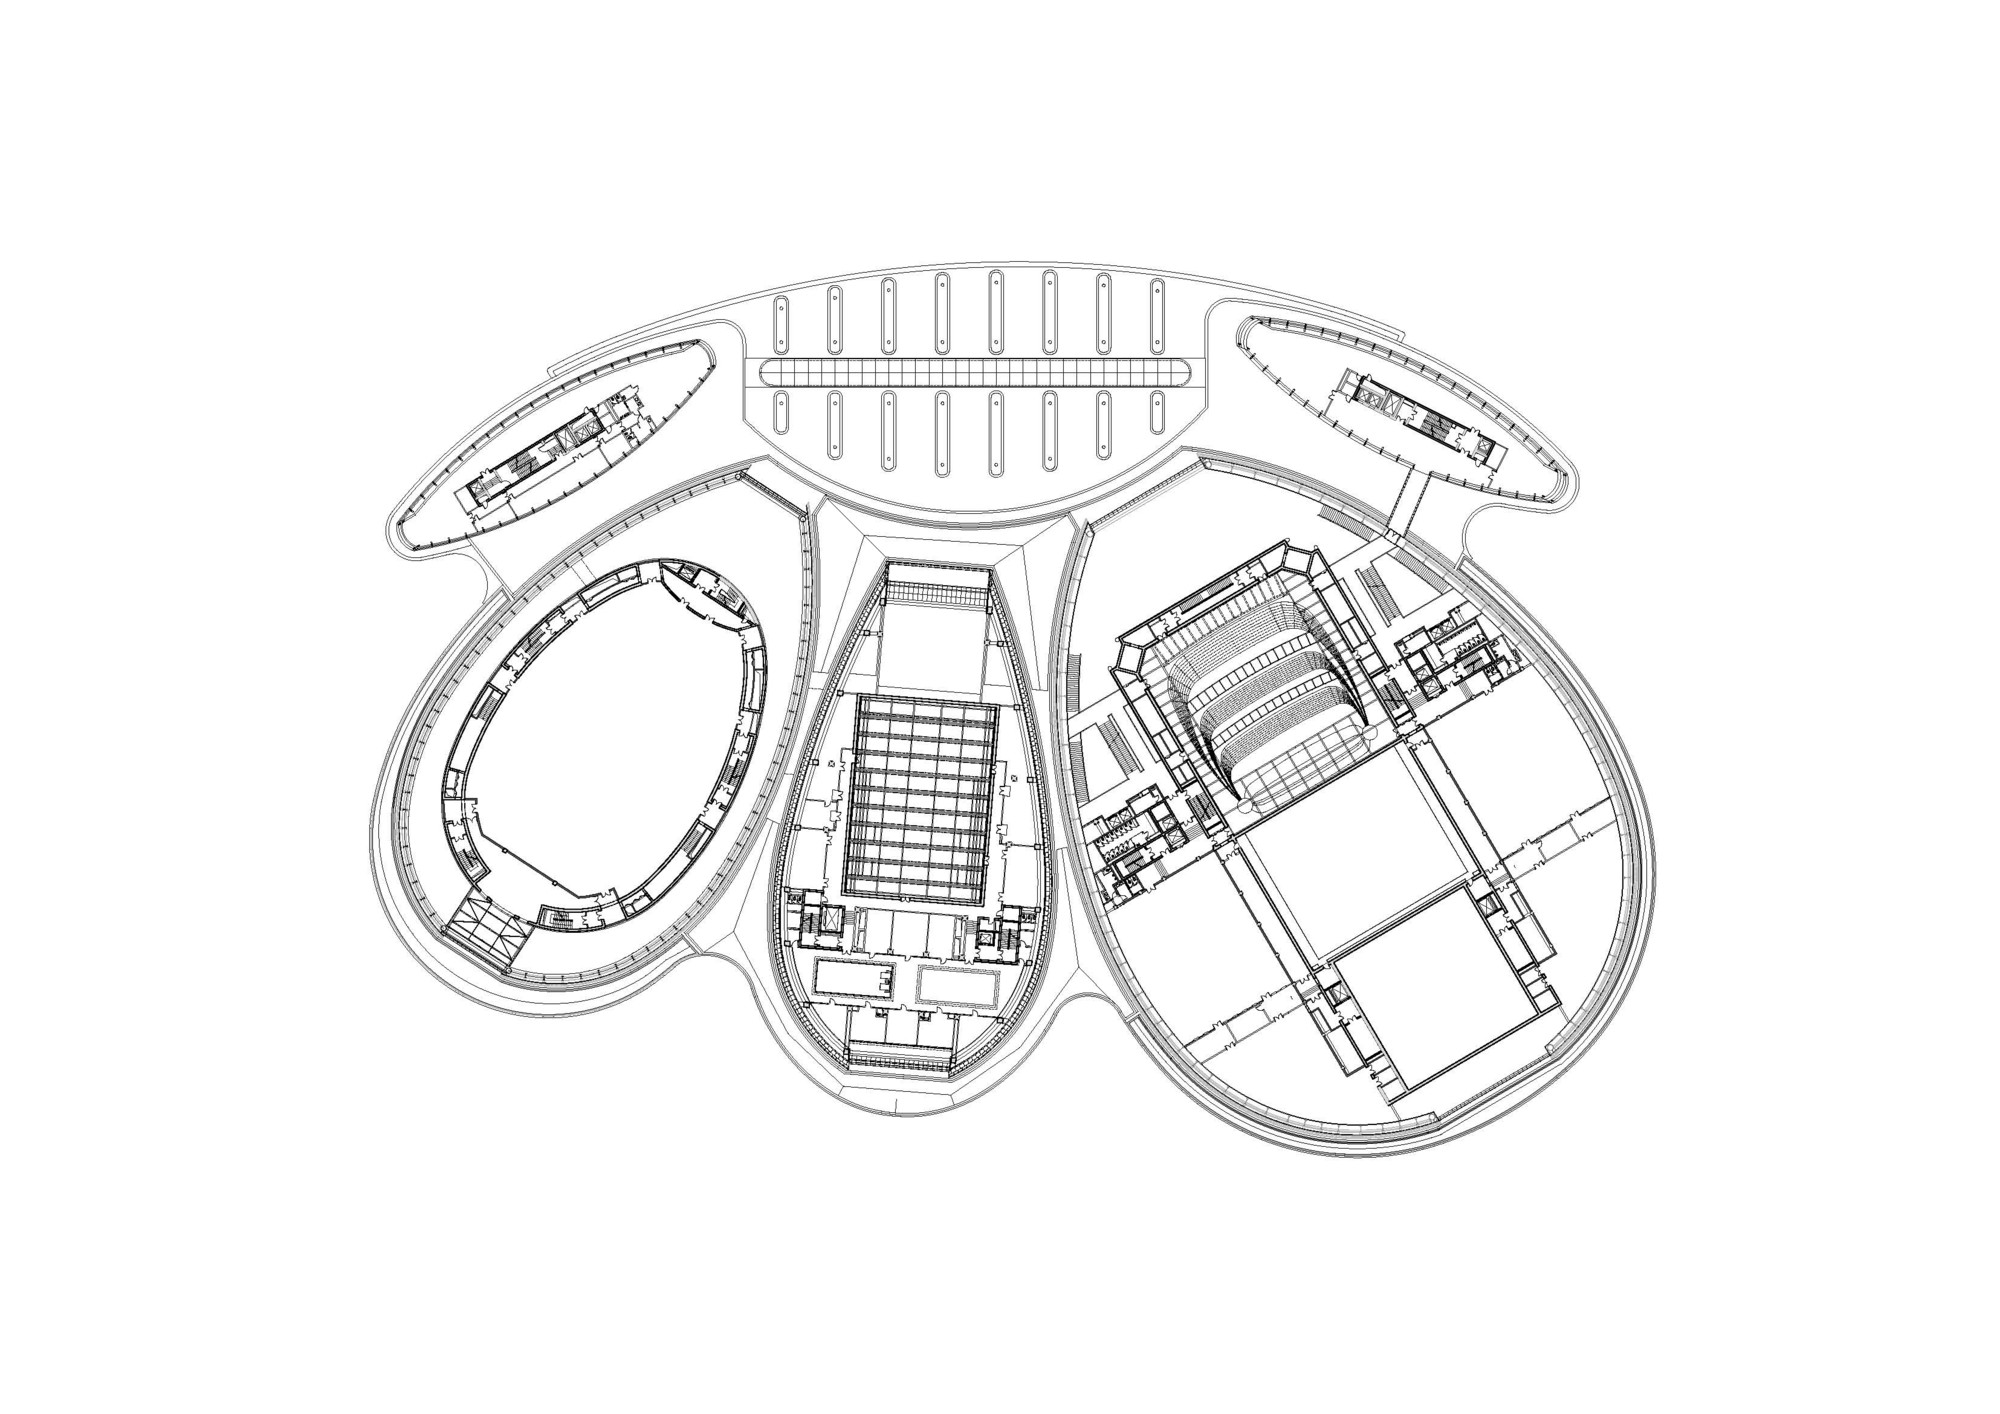 Day Care Center Floor Plans Gallery Of New Opera In Jinan Paul Andreu Architecte 38